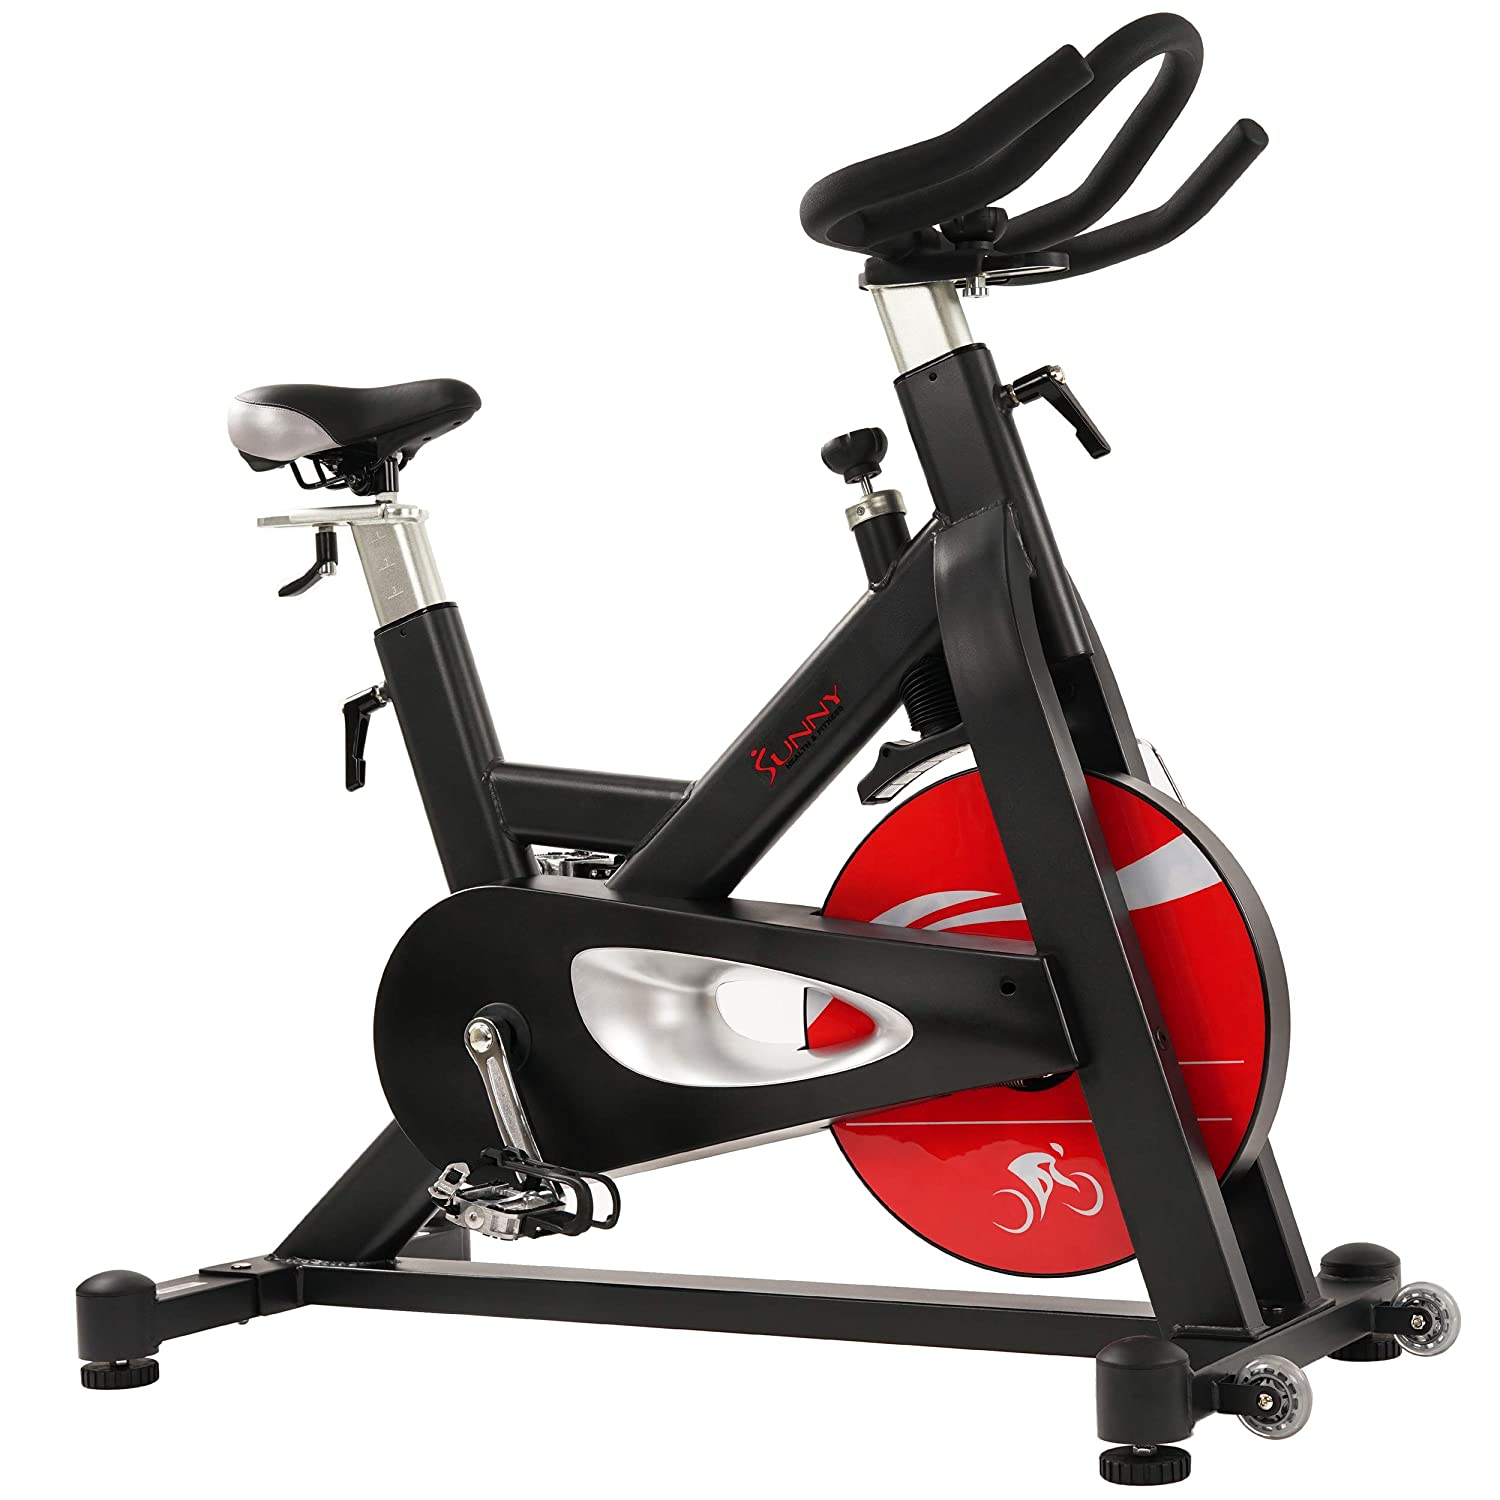 Sunny Health Fitness Evolution Pro Magnetic Belt Drive Indoor Cycling Bike, 330 LB Max Weight, 44 LB Flywheel – SF-B1714